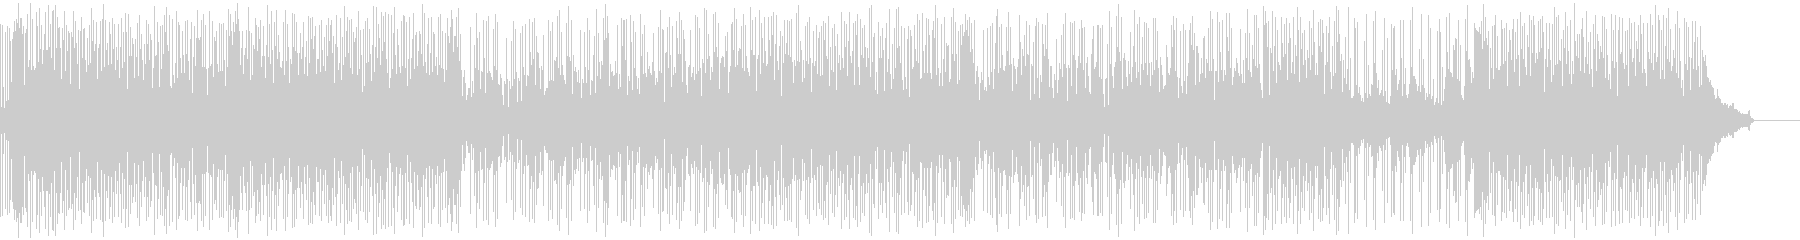 Refreshing opening song's unreproduced waveform